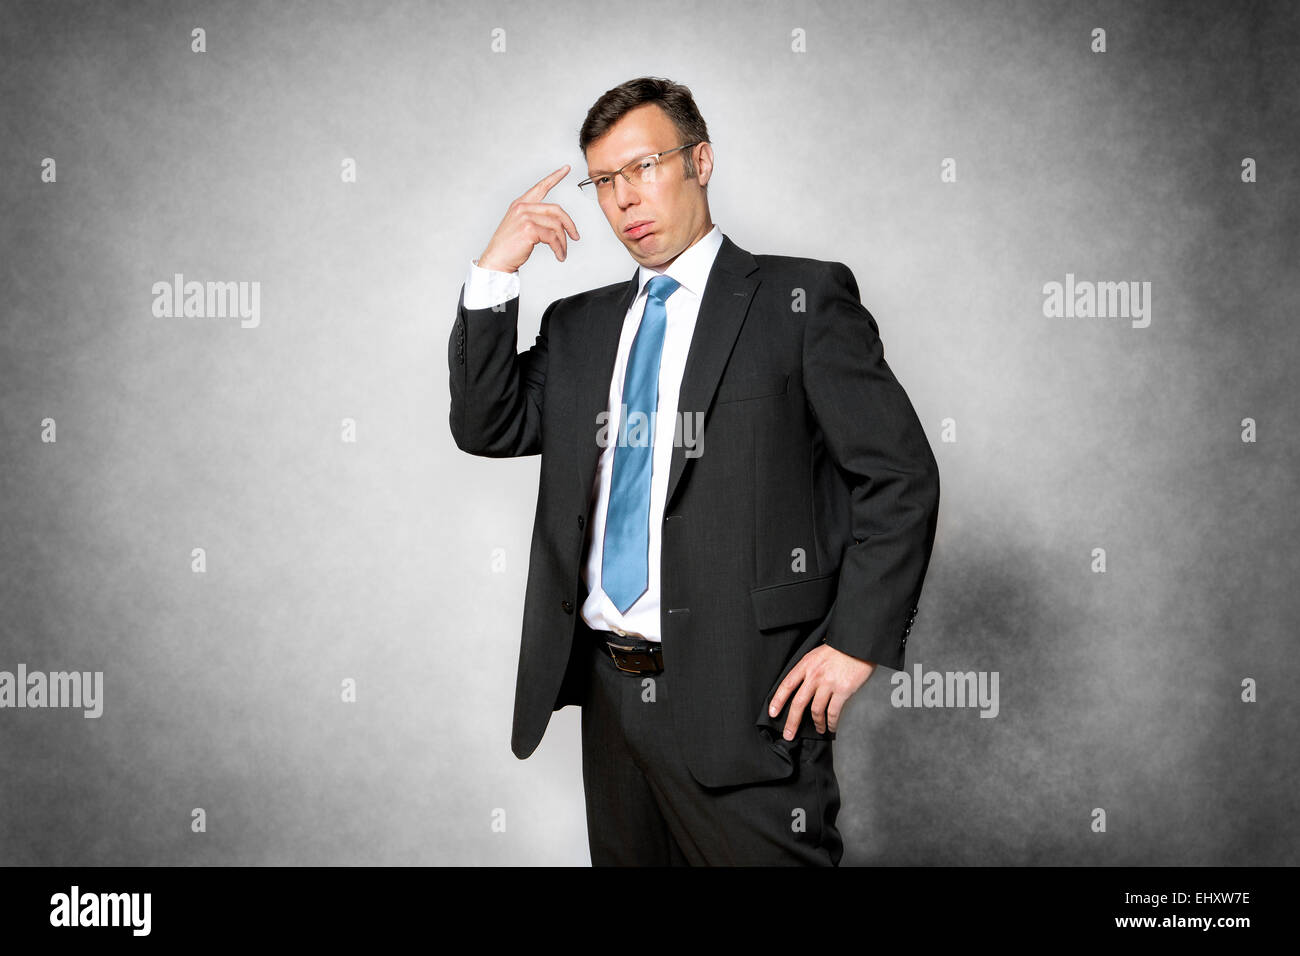 Image of conceited business man in dark suit pointing his finger to his head - Stock Image